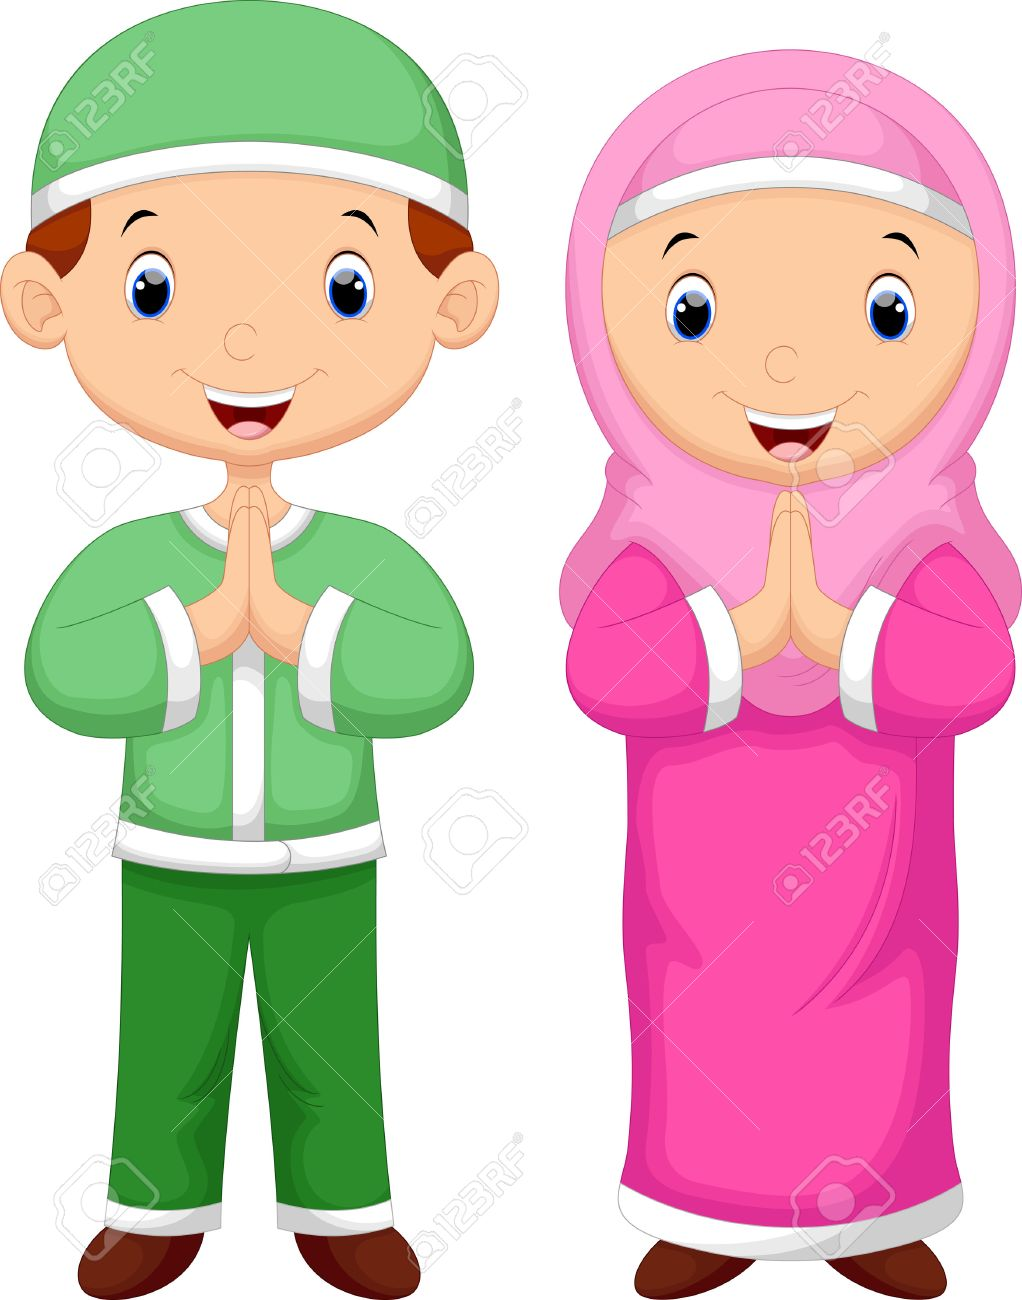 muslim kid cartoon royalty free cliparts vectors and stock